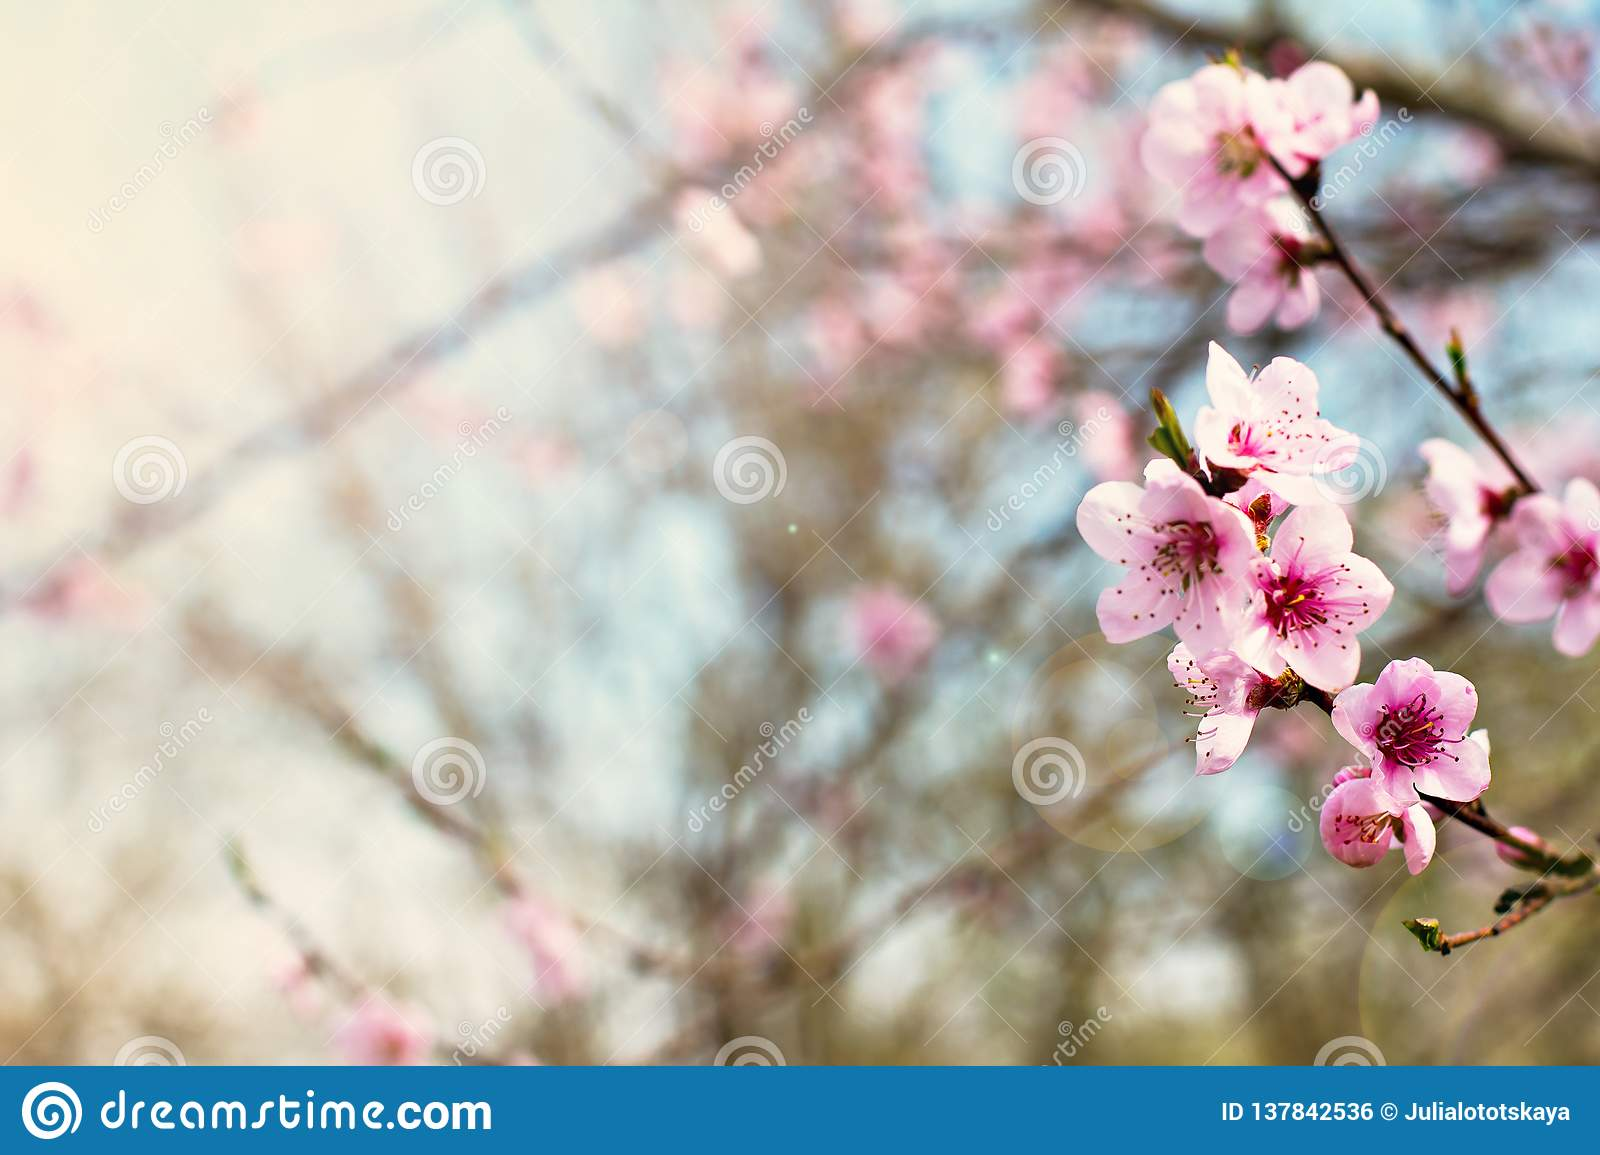 pink flowers on a twig of a flowering tree spring background